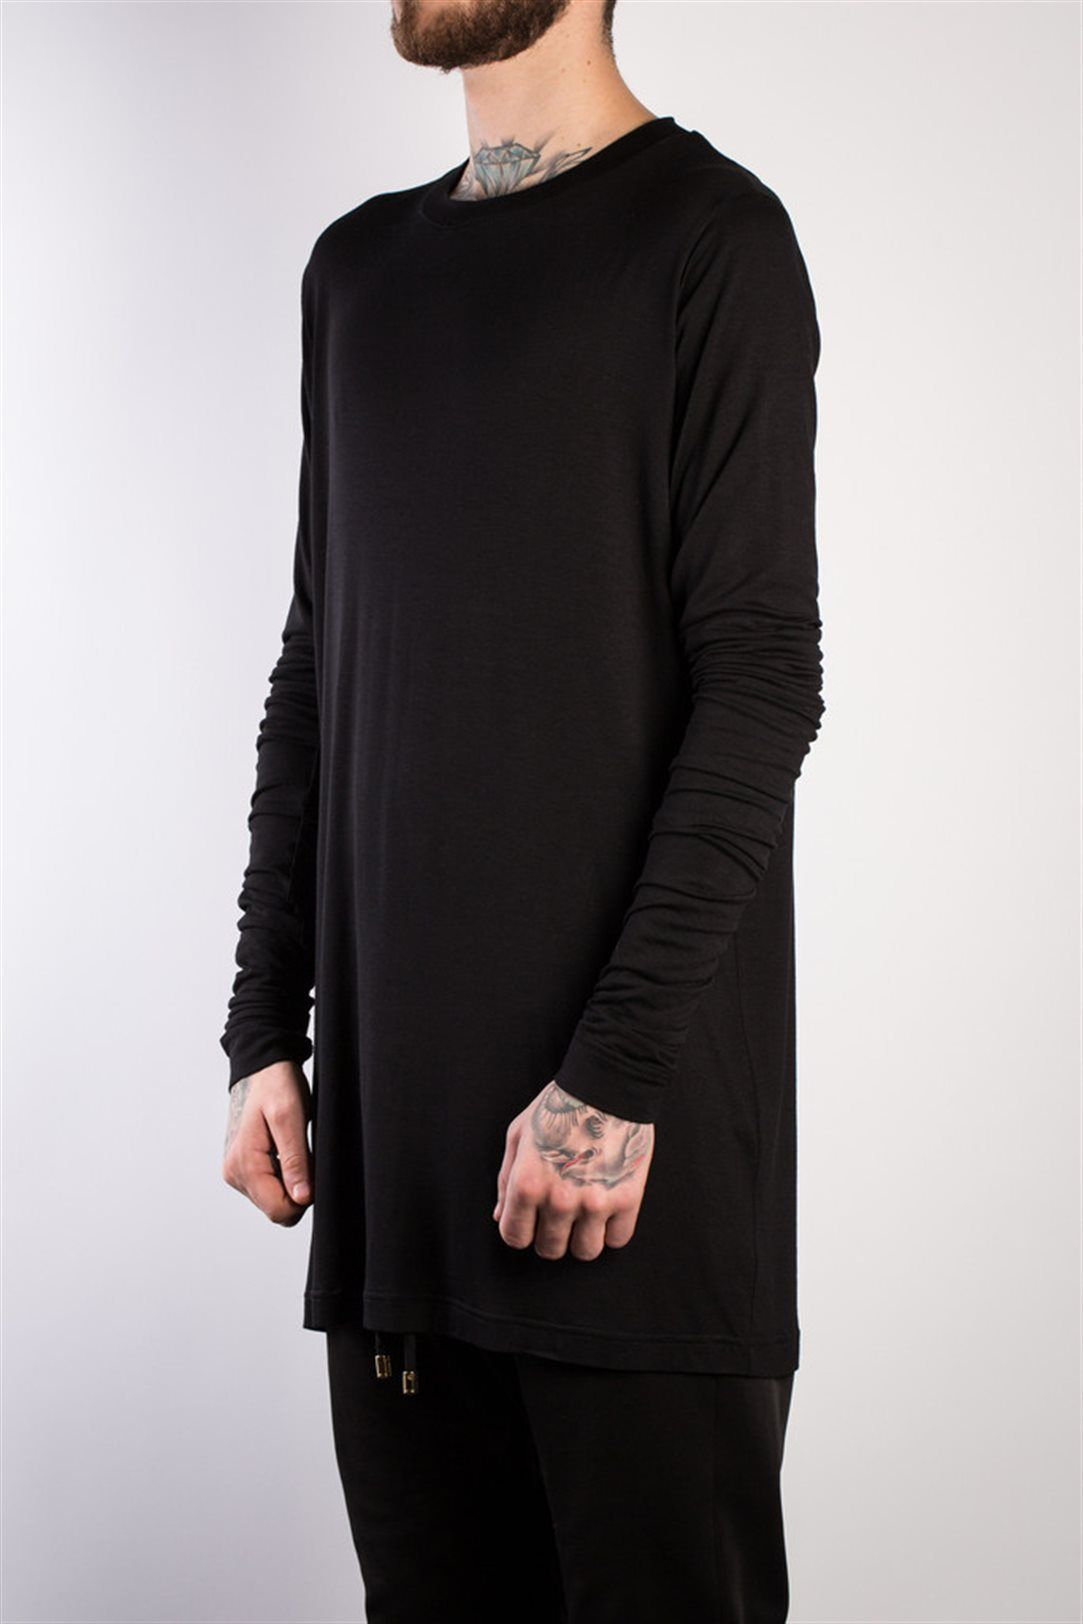 Black t shirt long sleeve - Adyn Black Tee Shirt With Long Sleeves And Thumb Holes Online Or In Store